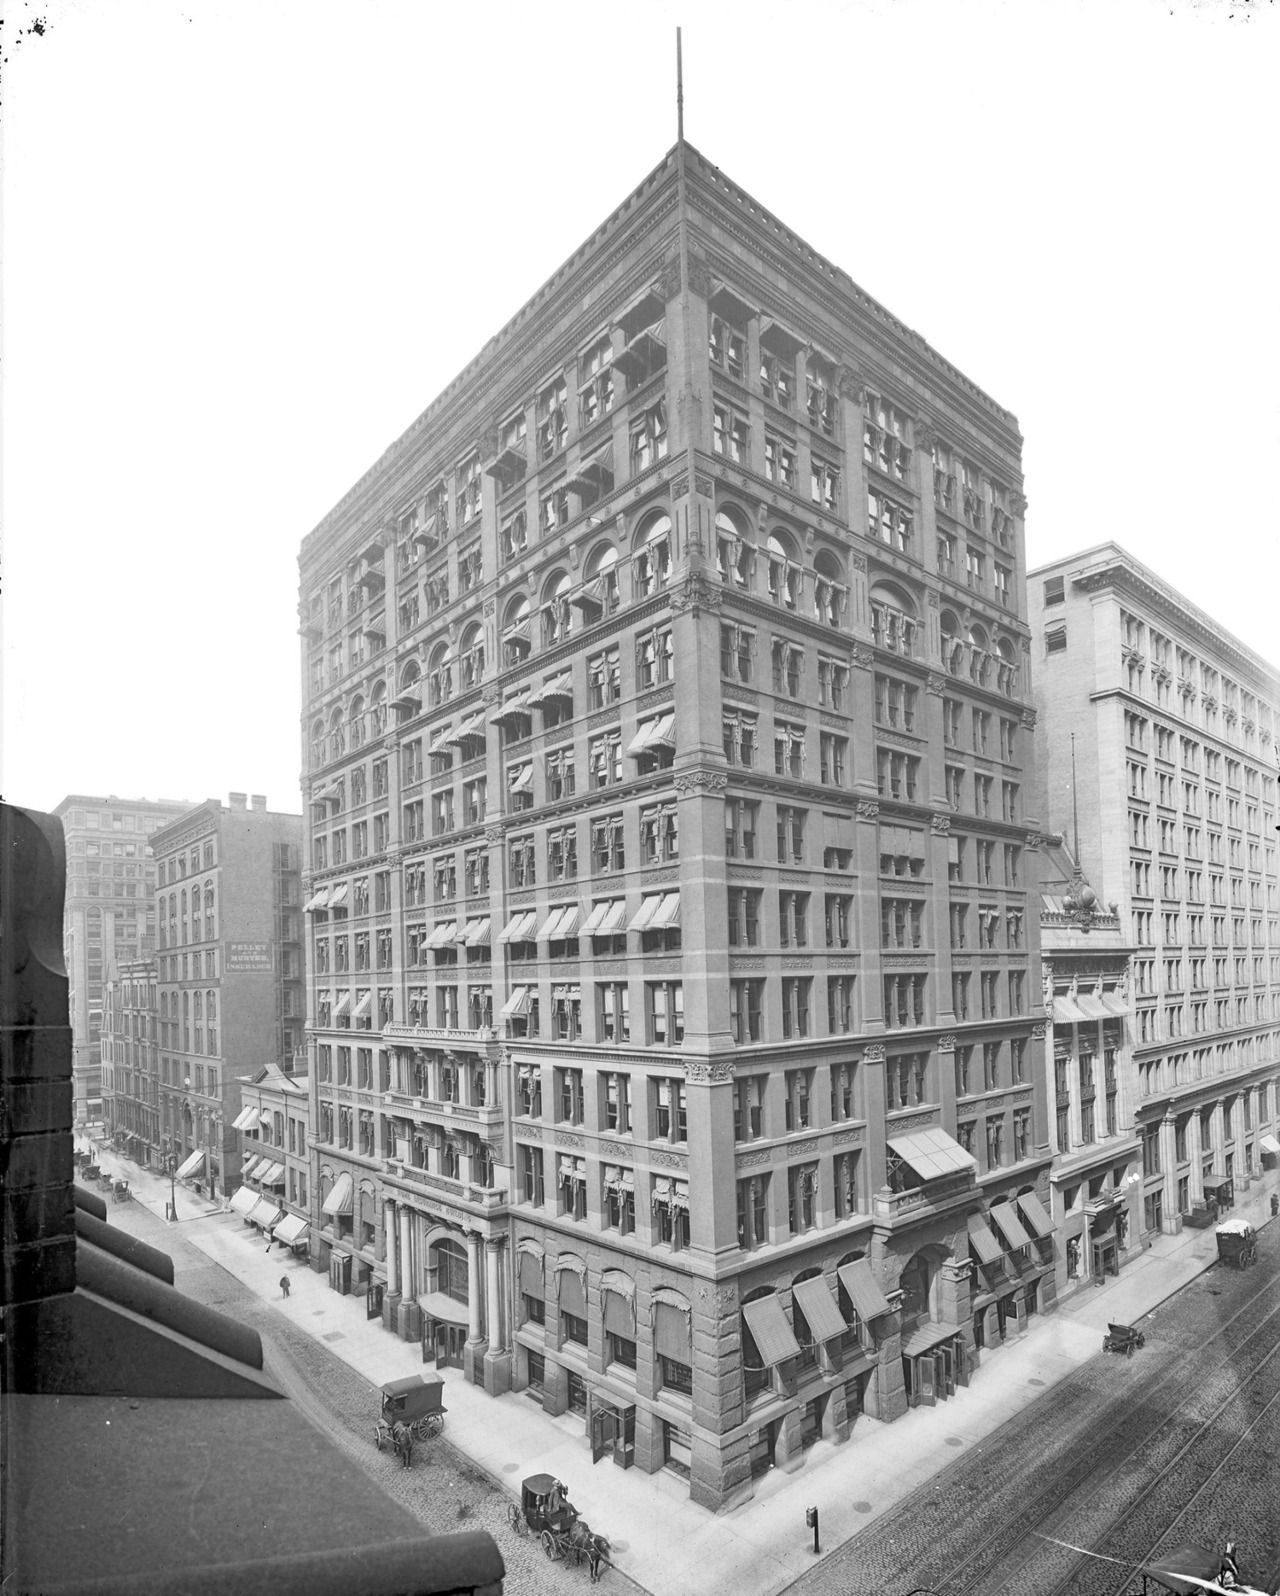 1905. Chicago. Unknown streets. Home Insurance Building